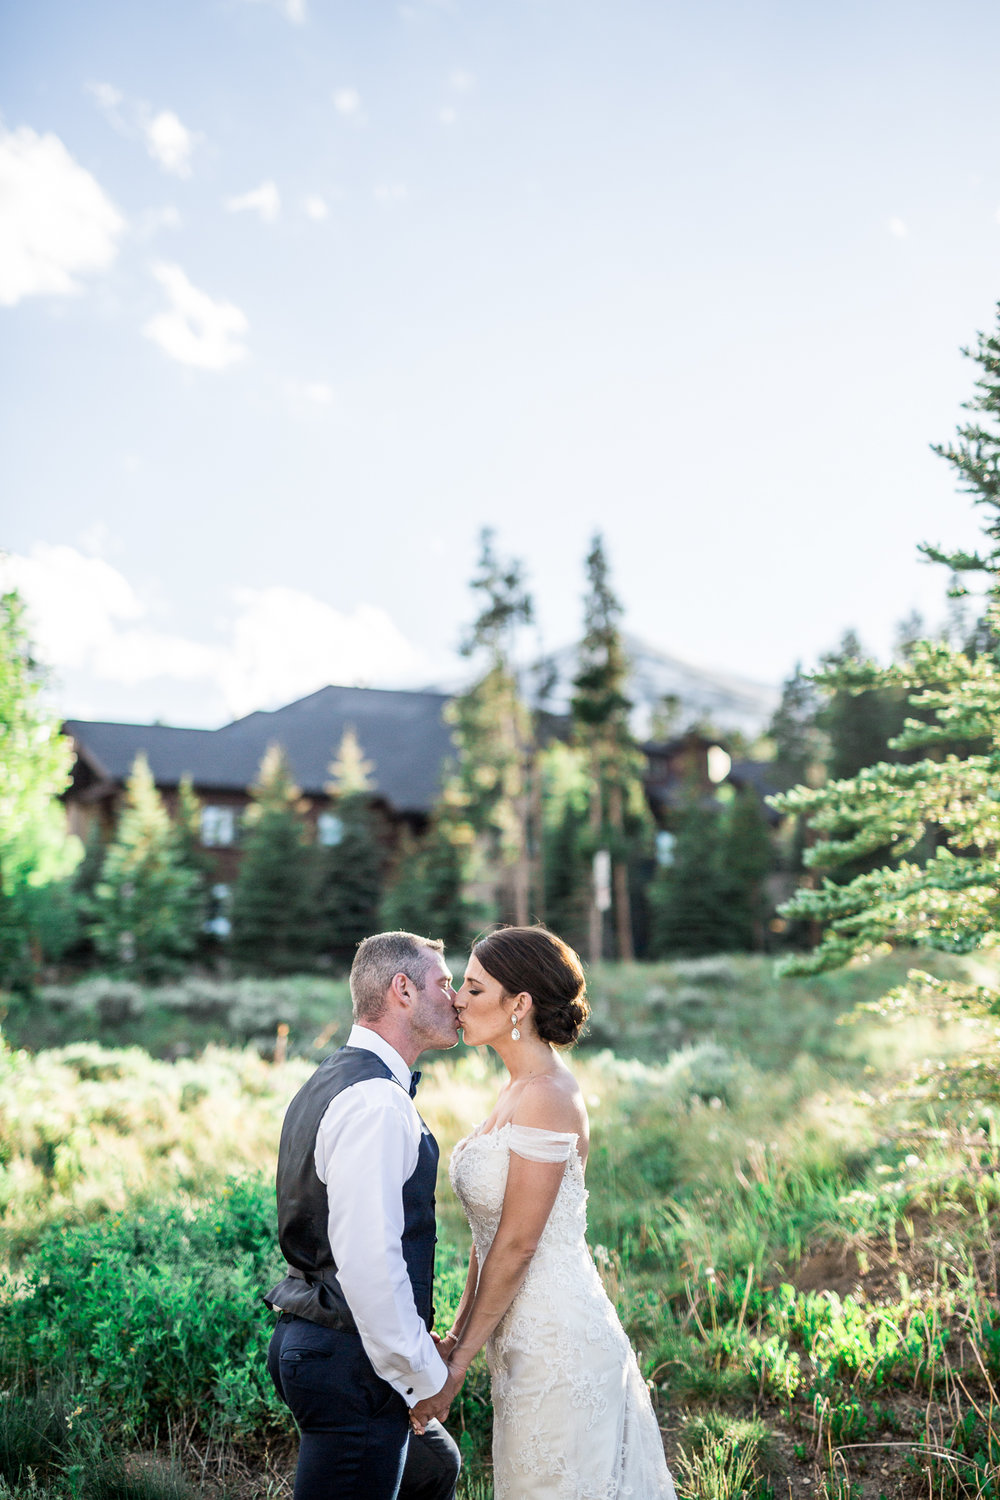 StaciDesign-Colorado-Wedding-5547.jpg